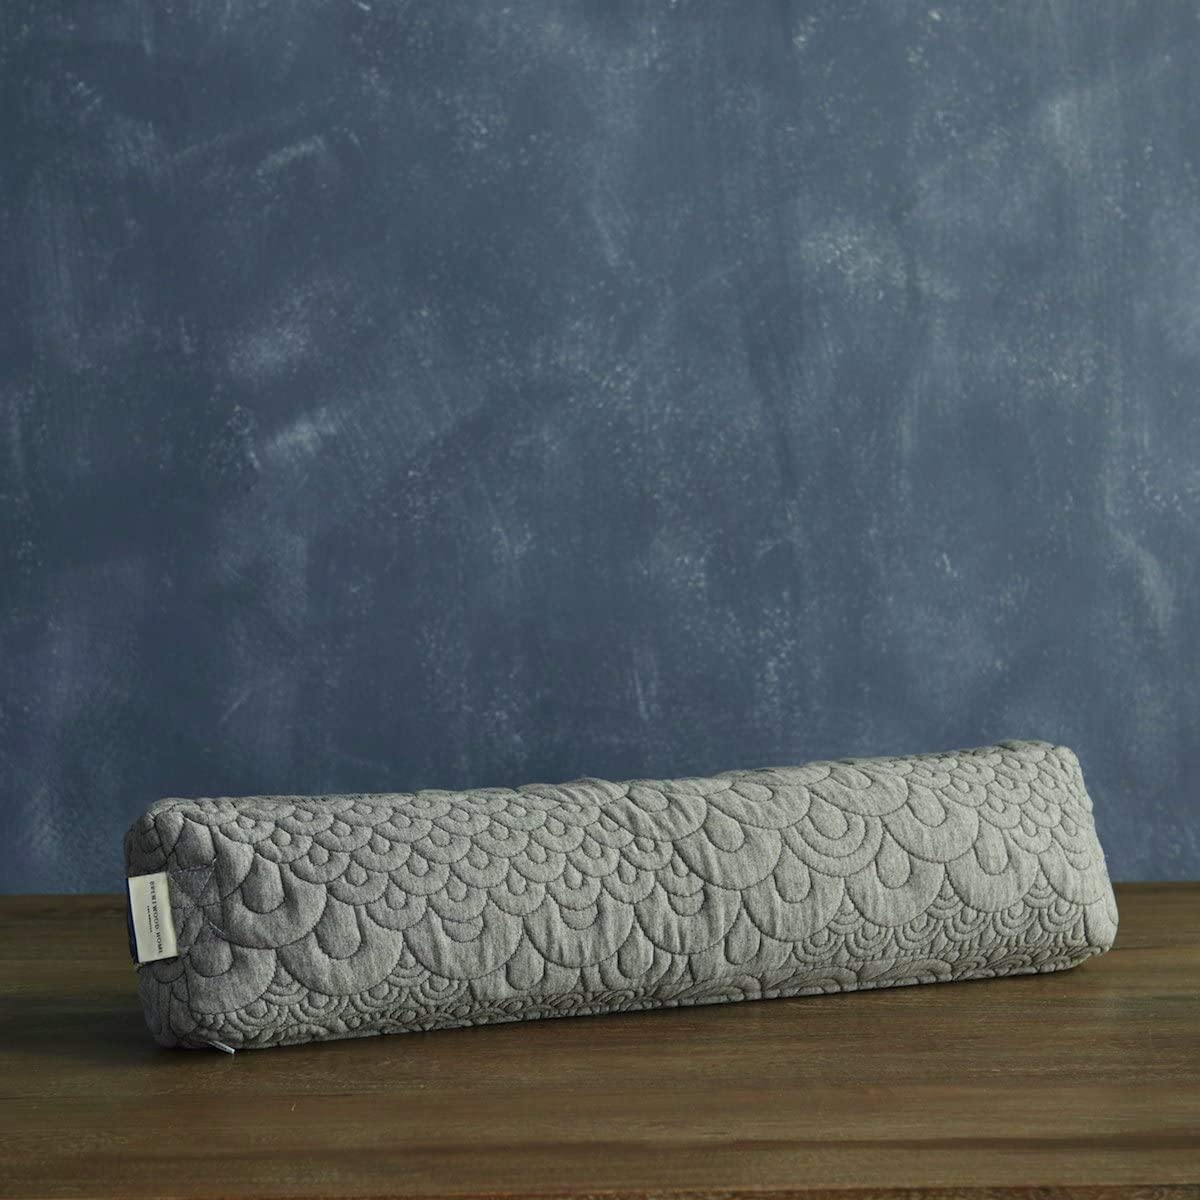 Sustainable Buckwheat Hull Fill Details about  /Crystal Cove Yoga Pranayama Pillow